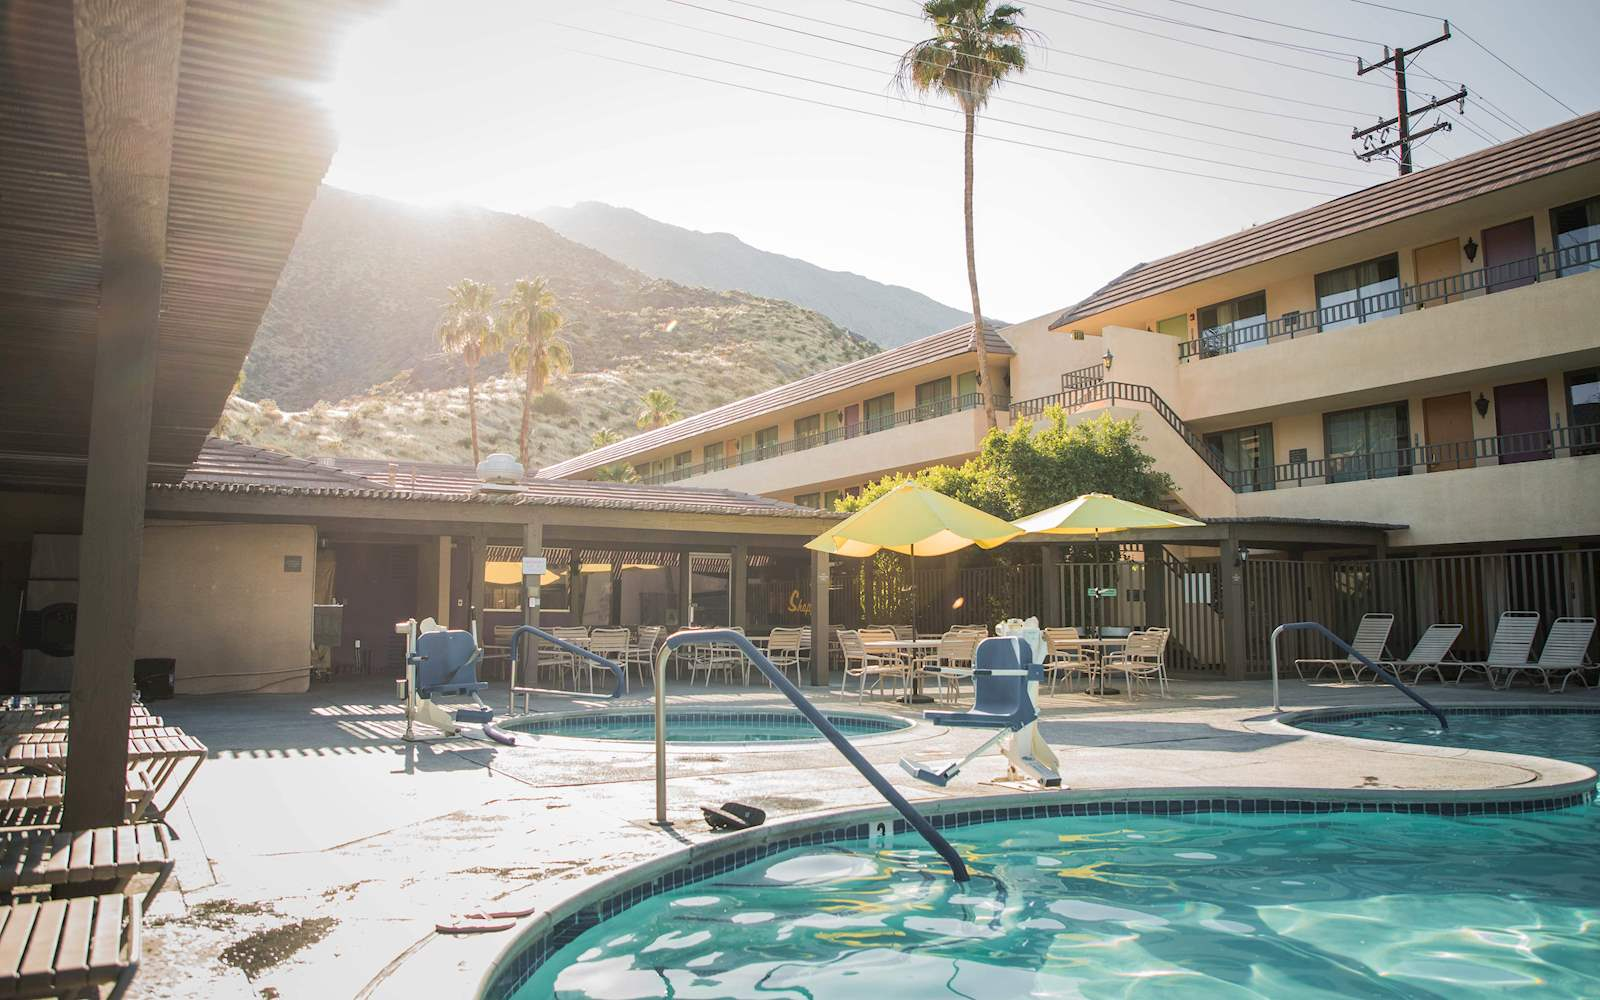 Hotel Goedkope Palm Springs Hotel Vagabond Inn Palm Springs